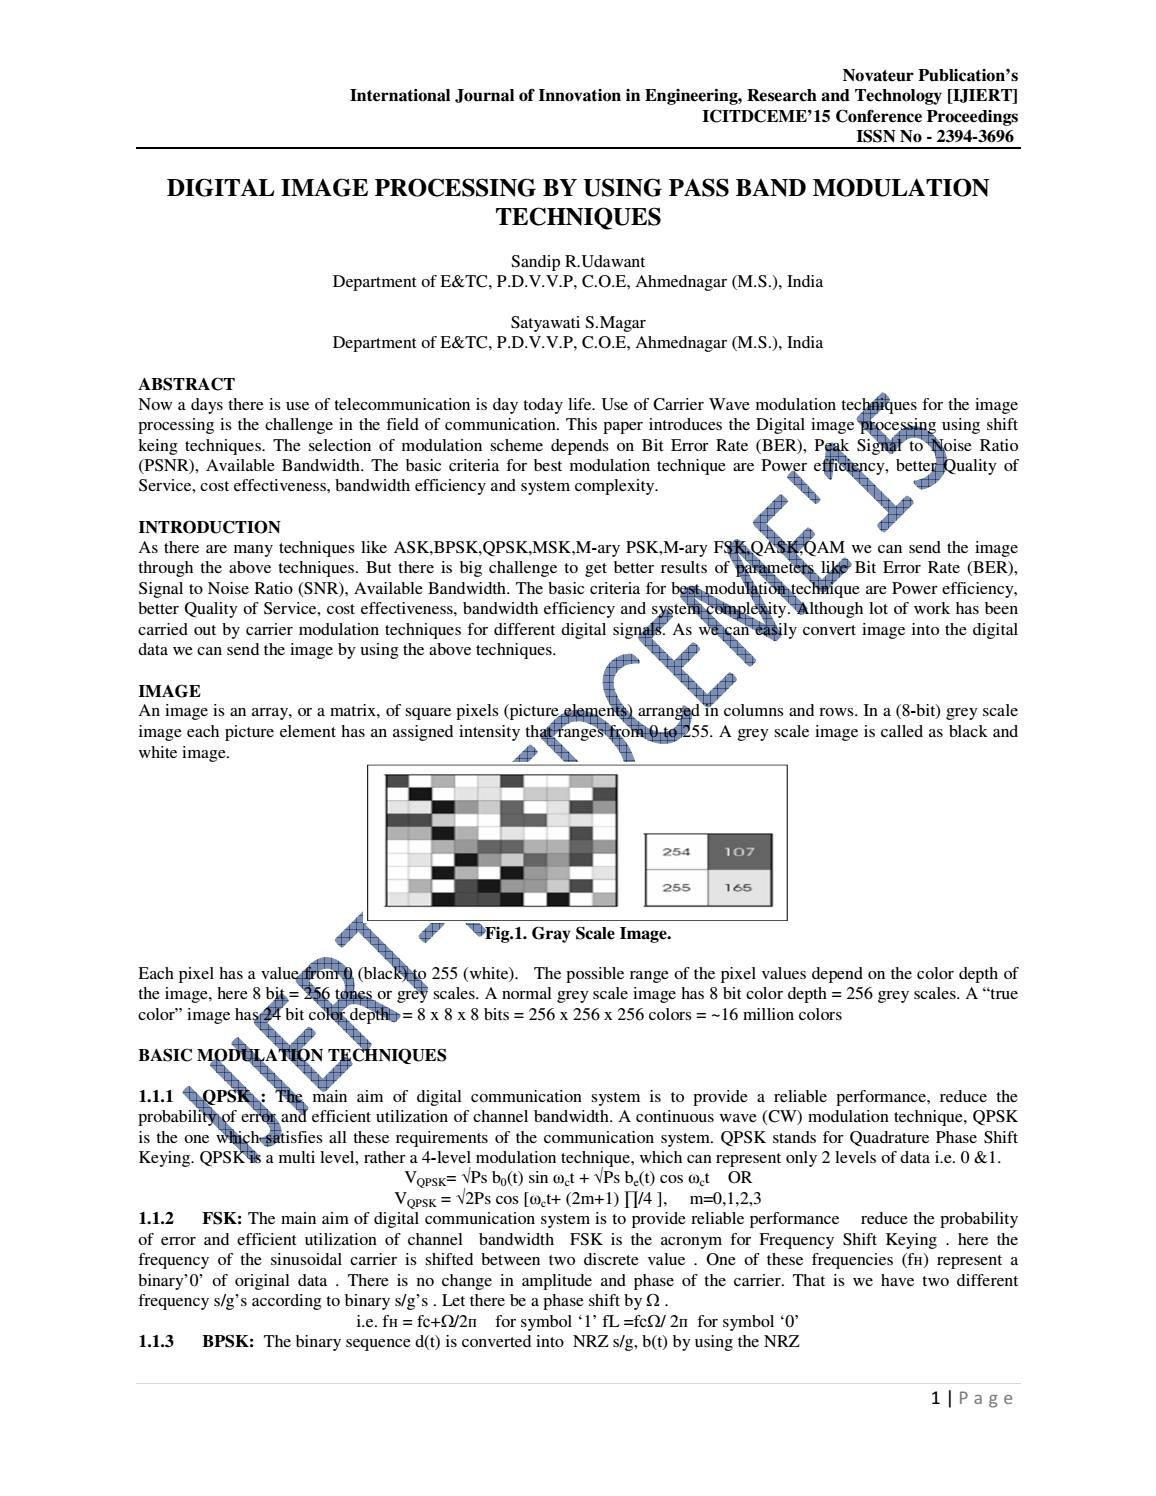 Ijiert Digital Image Processing By Using Pass Band Modulation M Ary Psk Block Diagram Techniques Journal Issuu